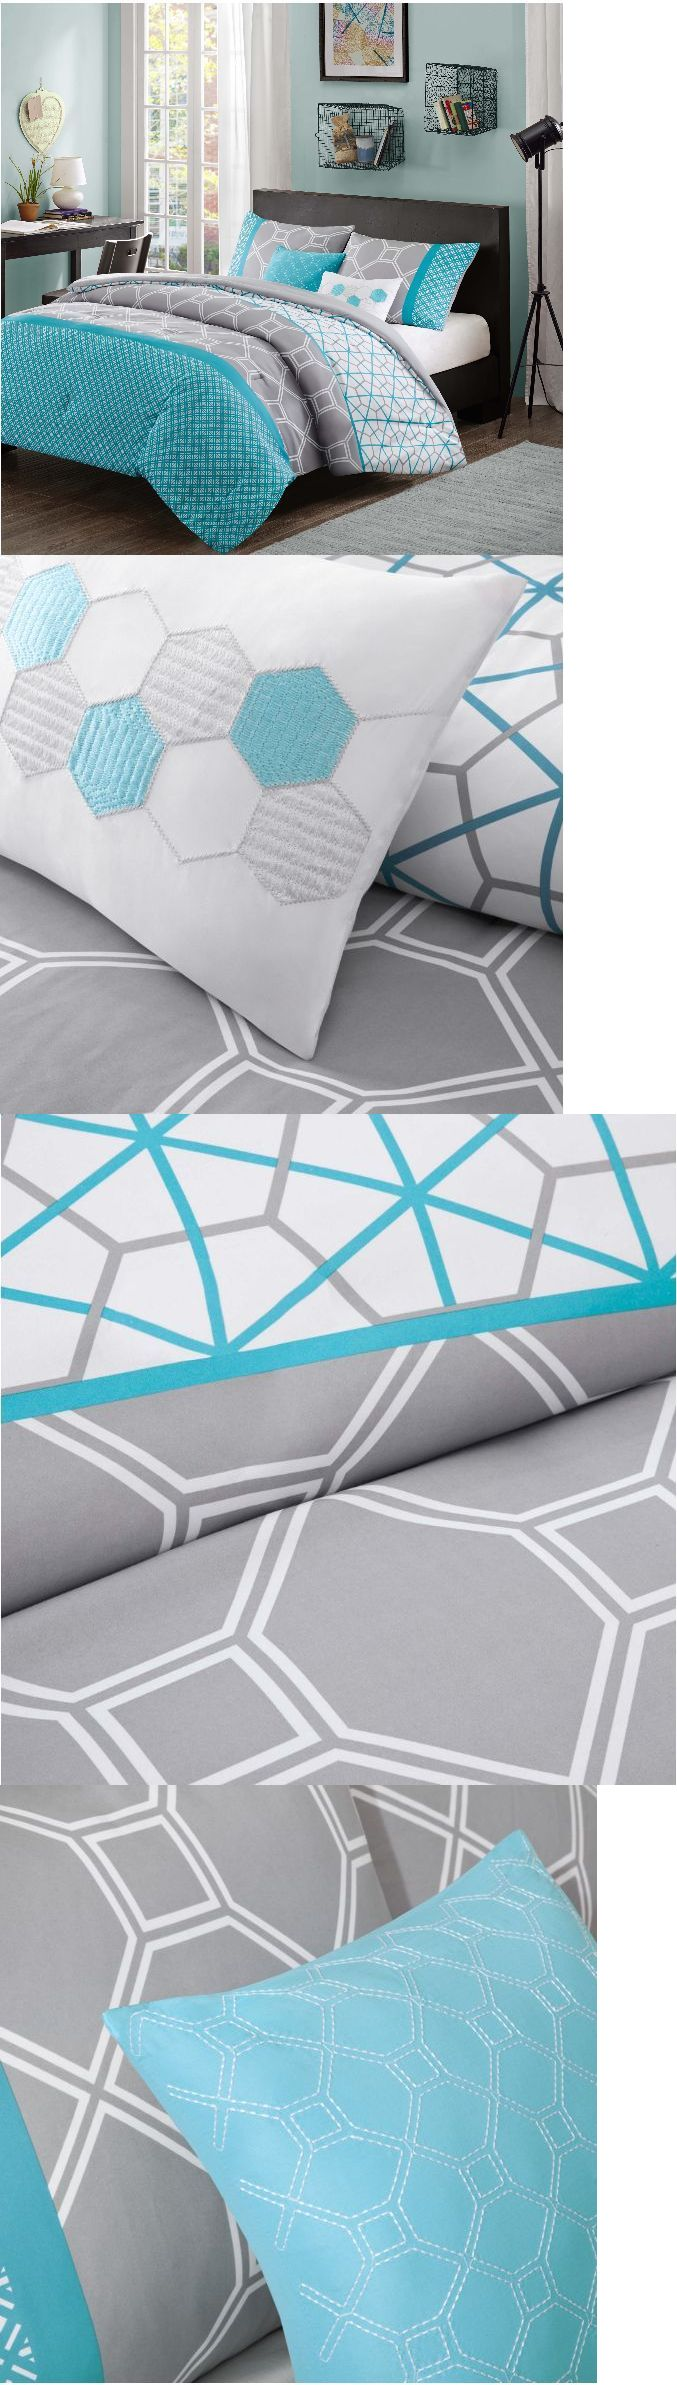 Kids Bedding: Bedding Sets For Teens Kids Comforter Girls Aqua Blue Gray Full Queen Twin 5 Pc -> BUY IT NOW ONLY: $69.99 on eBay!